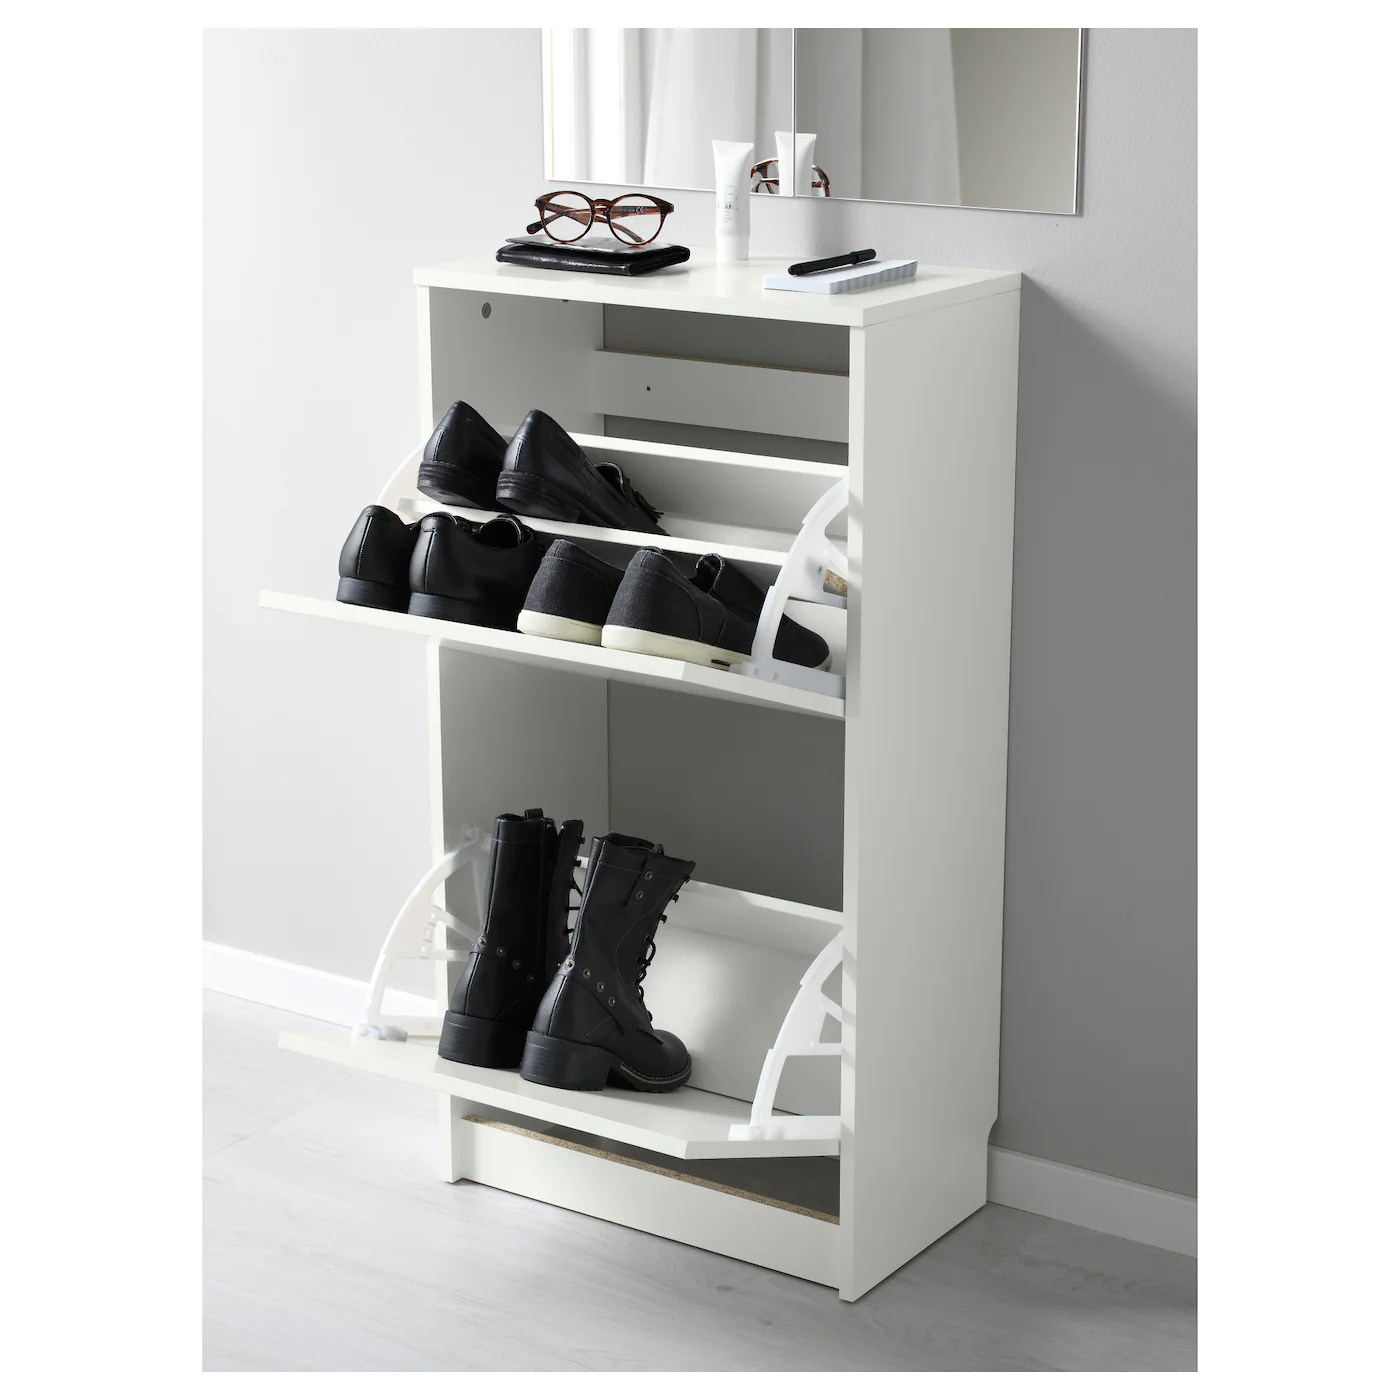 Ikea Casier Chaussures Bissa Armoire à Chaussures 2 Casiers Blanc 49x93 Cm Ikea